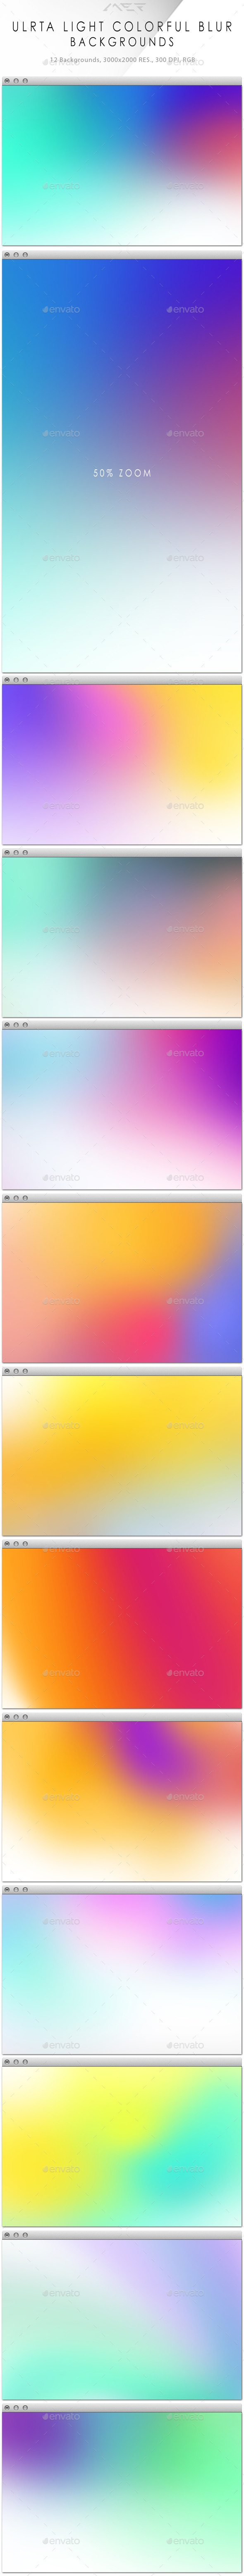 GraphicRiver Ultra Light Colorful Blur Backgrounds 10240278